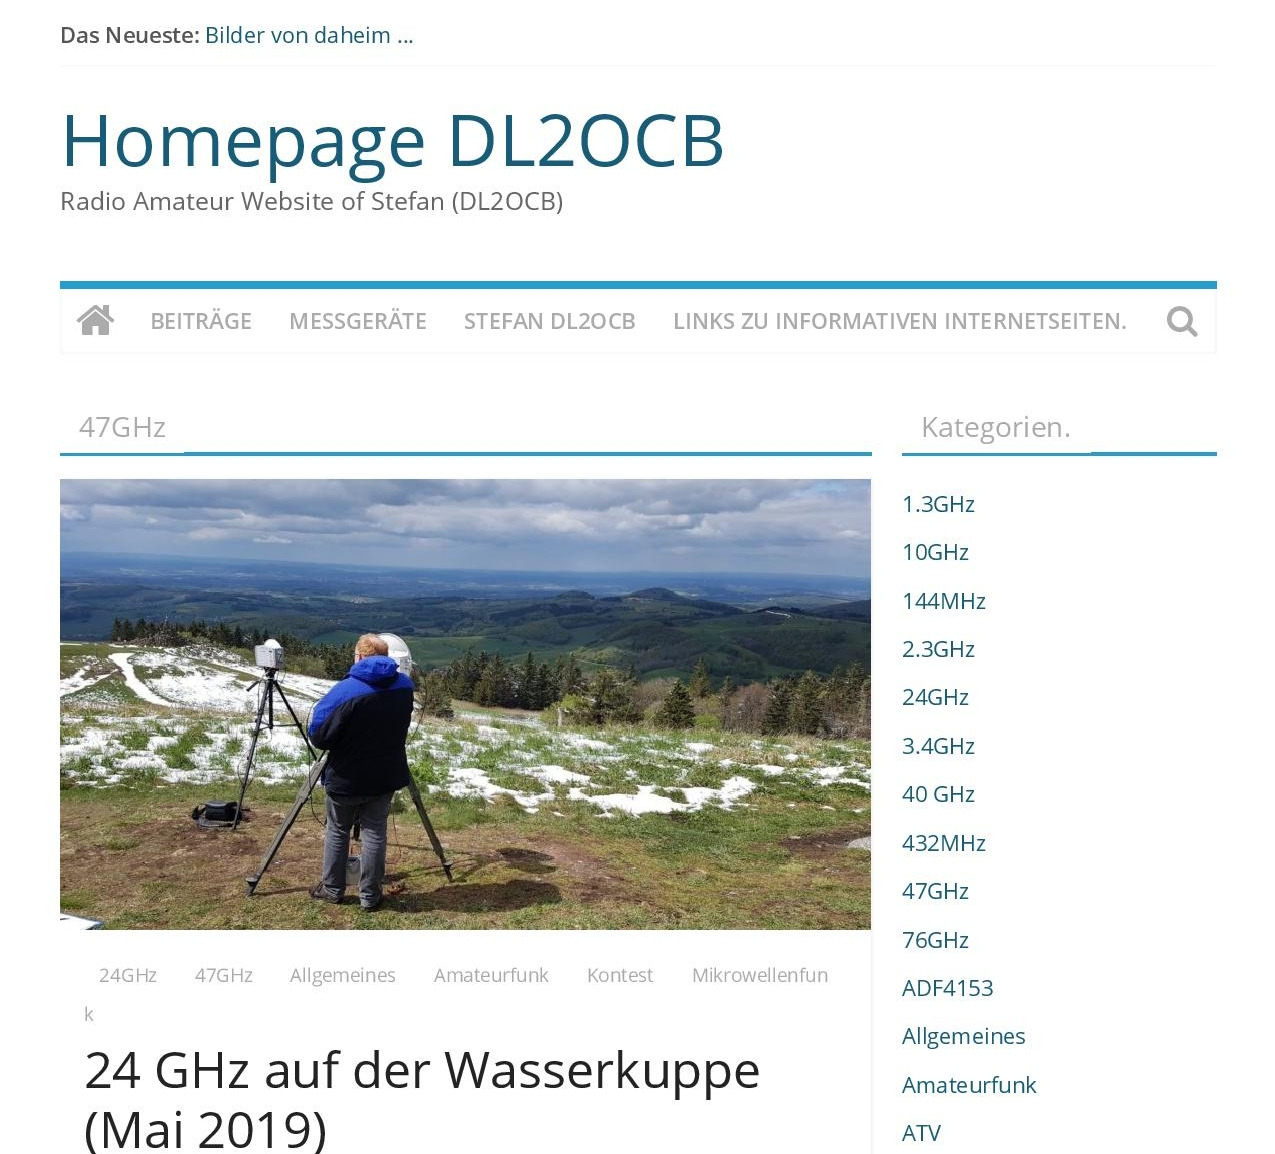 DL2OCB hamradio amateur radio